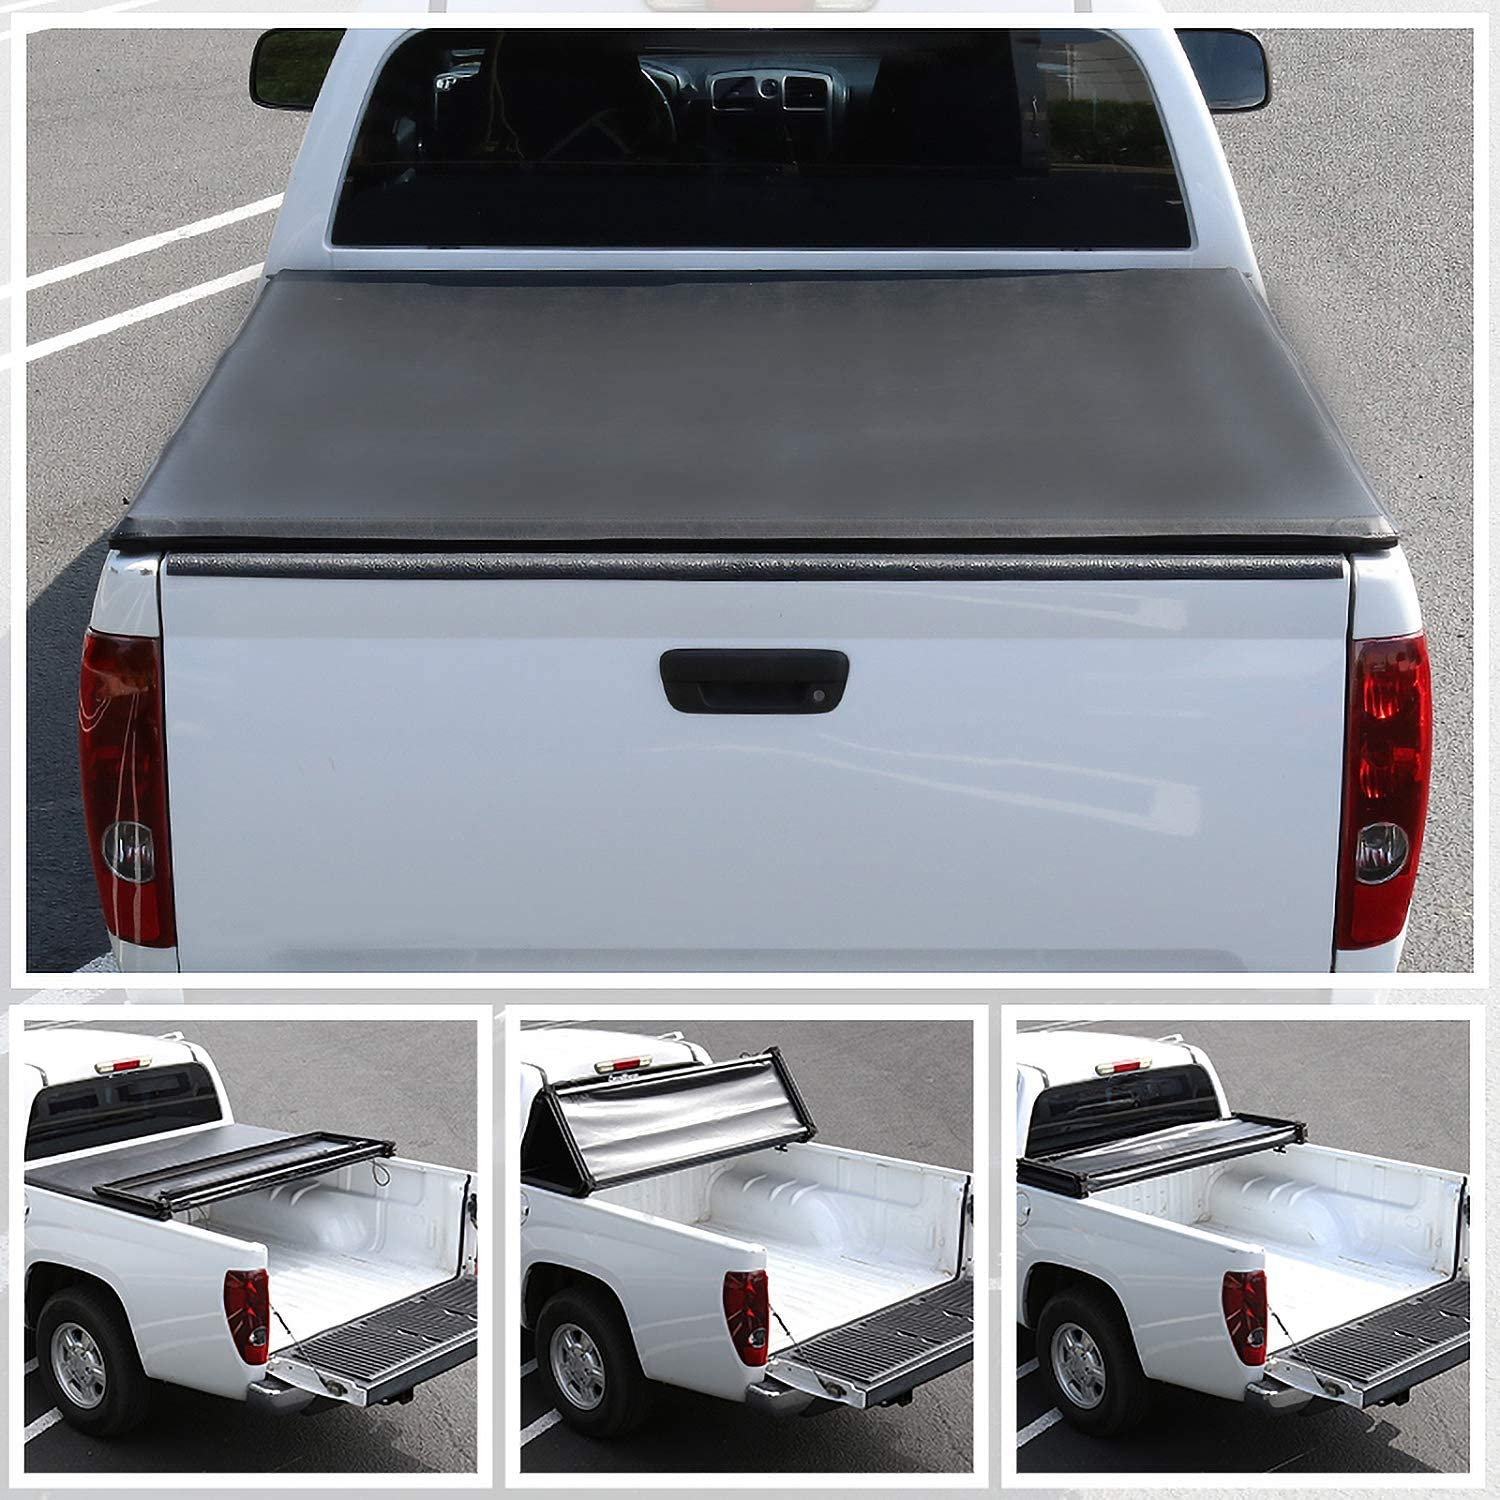 Spec-D Tuning 5.8' Short Bed Cover PickupTonneau C for 2004-2007 Spring Max 42% OFF new work one after another